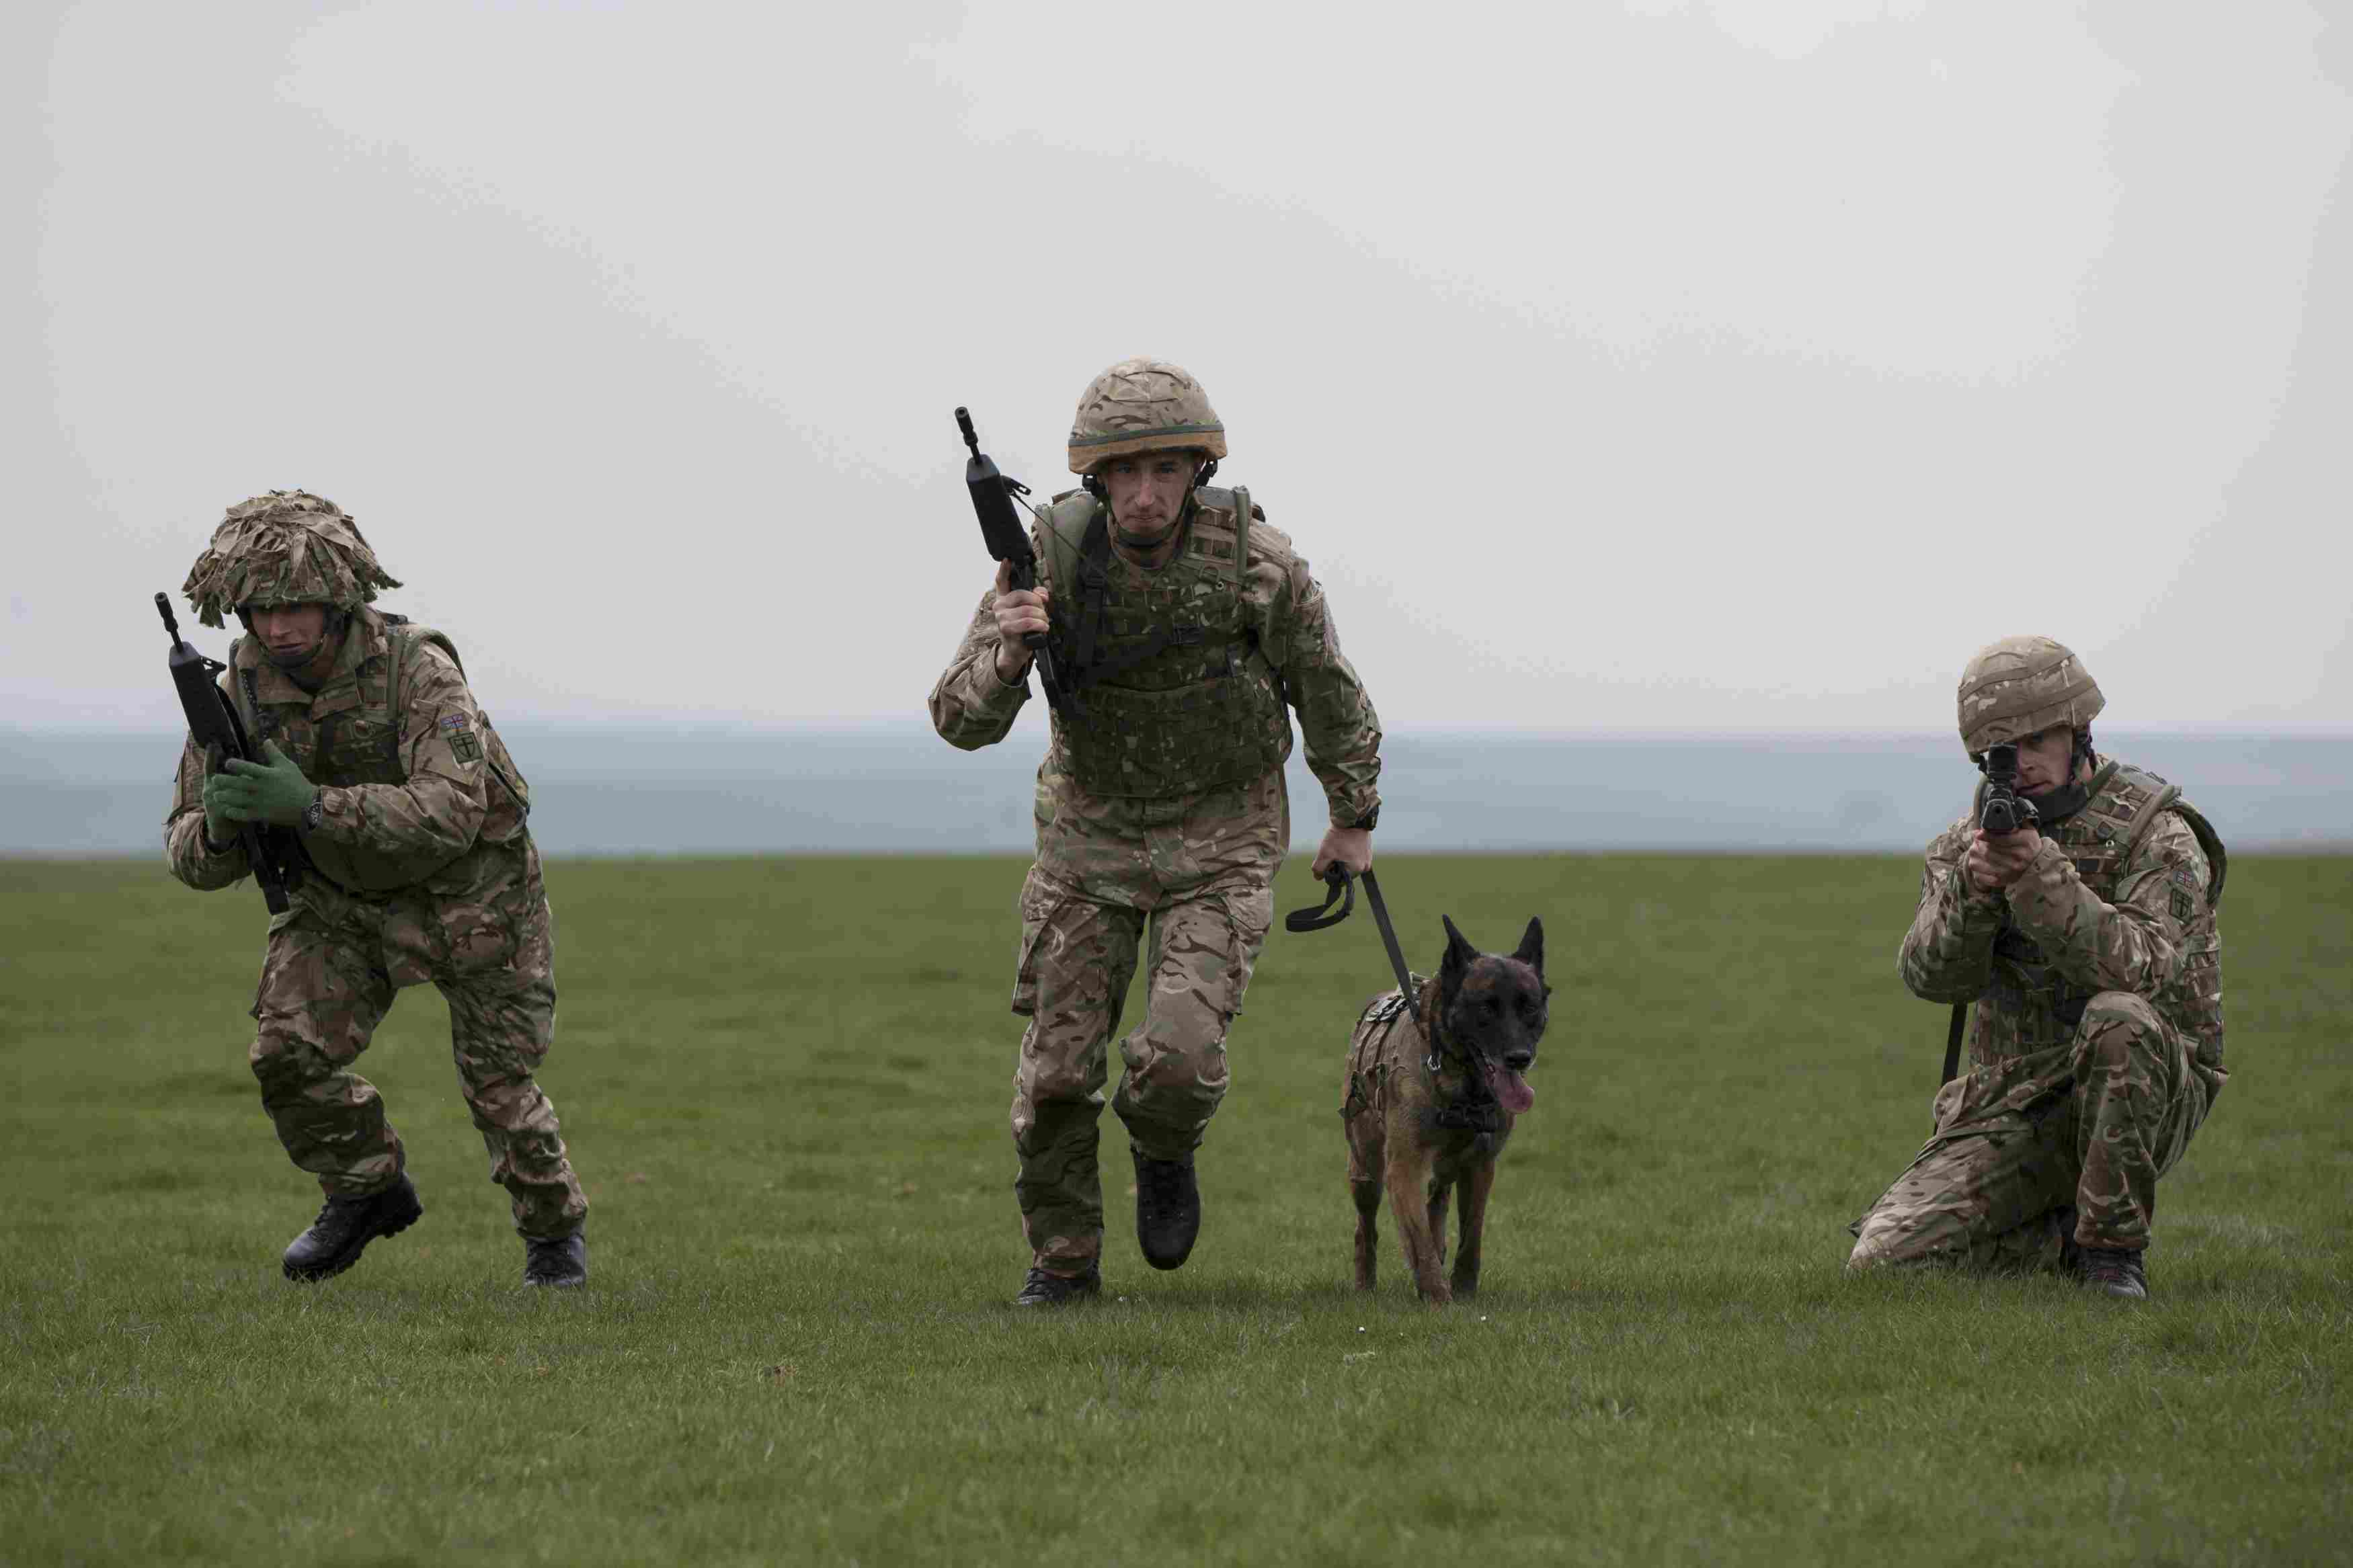 Soldiers with military dog